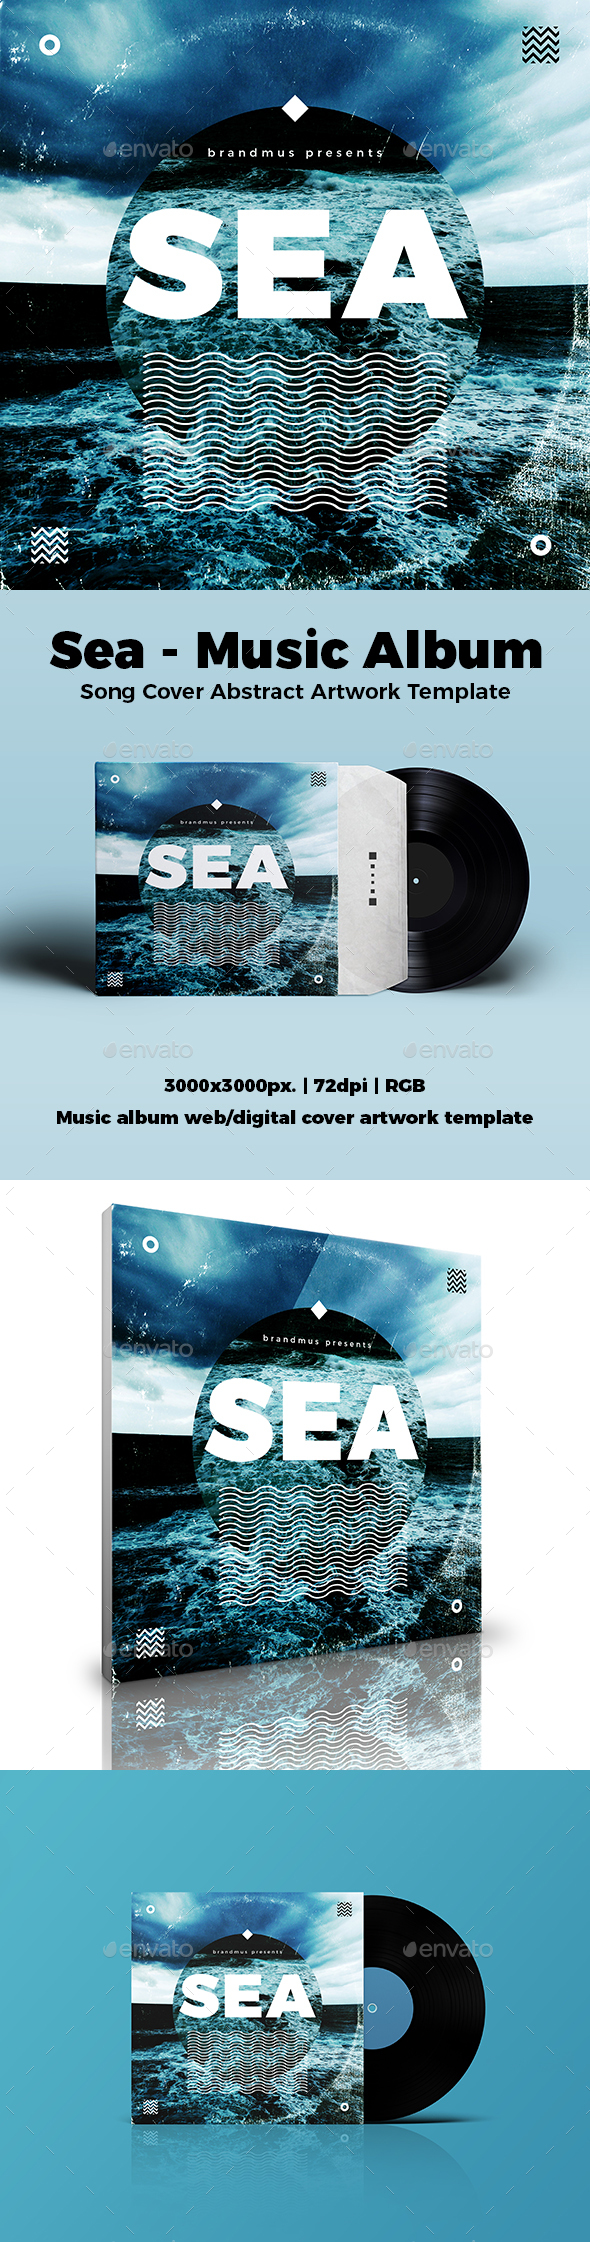 Sea - Music Album or Song Cover Abstract Artwork Template